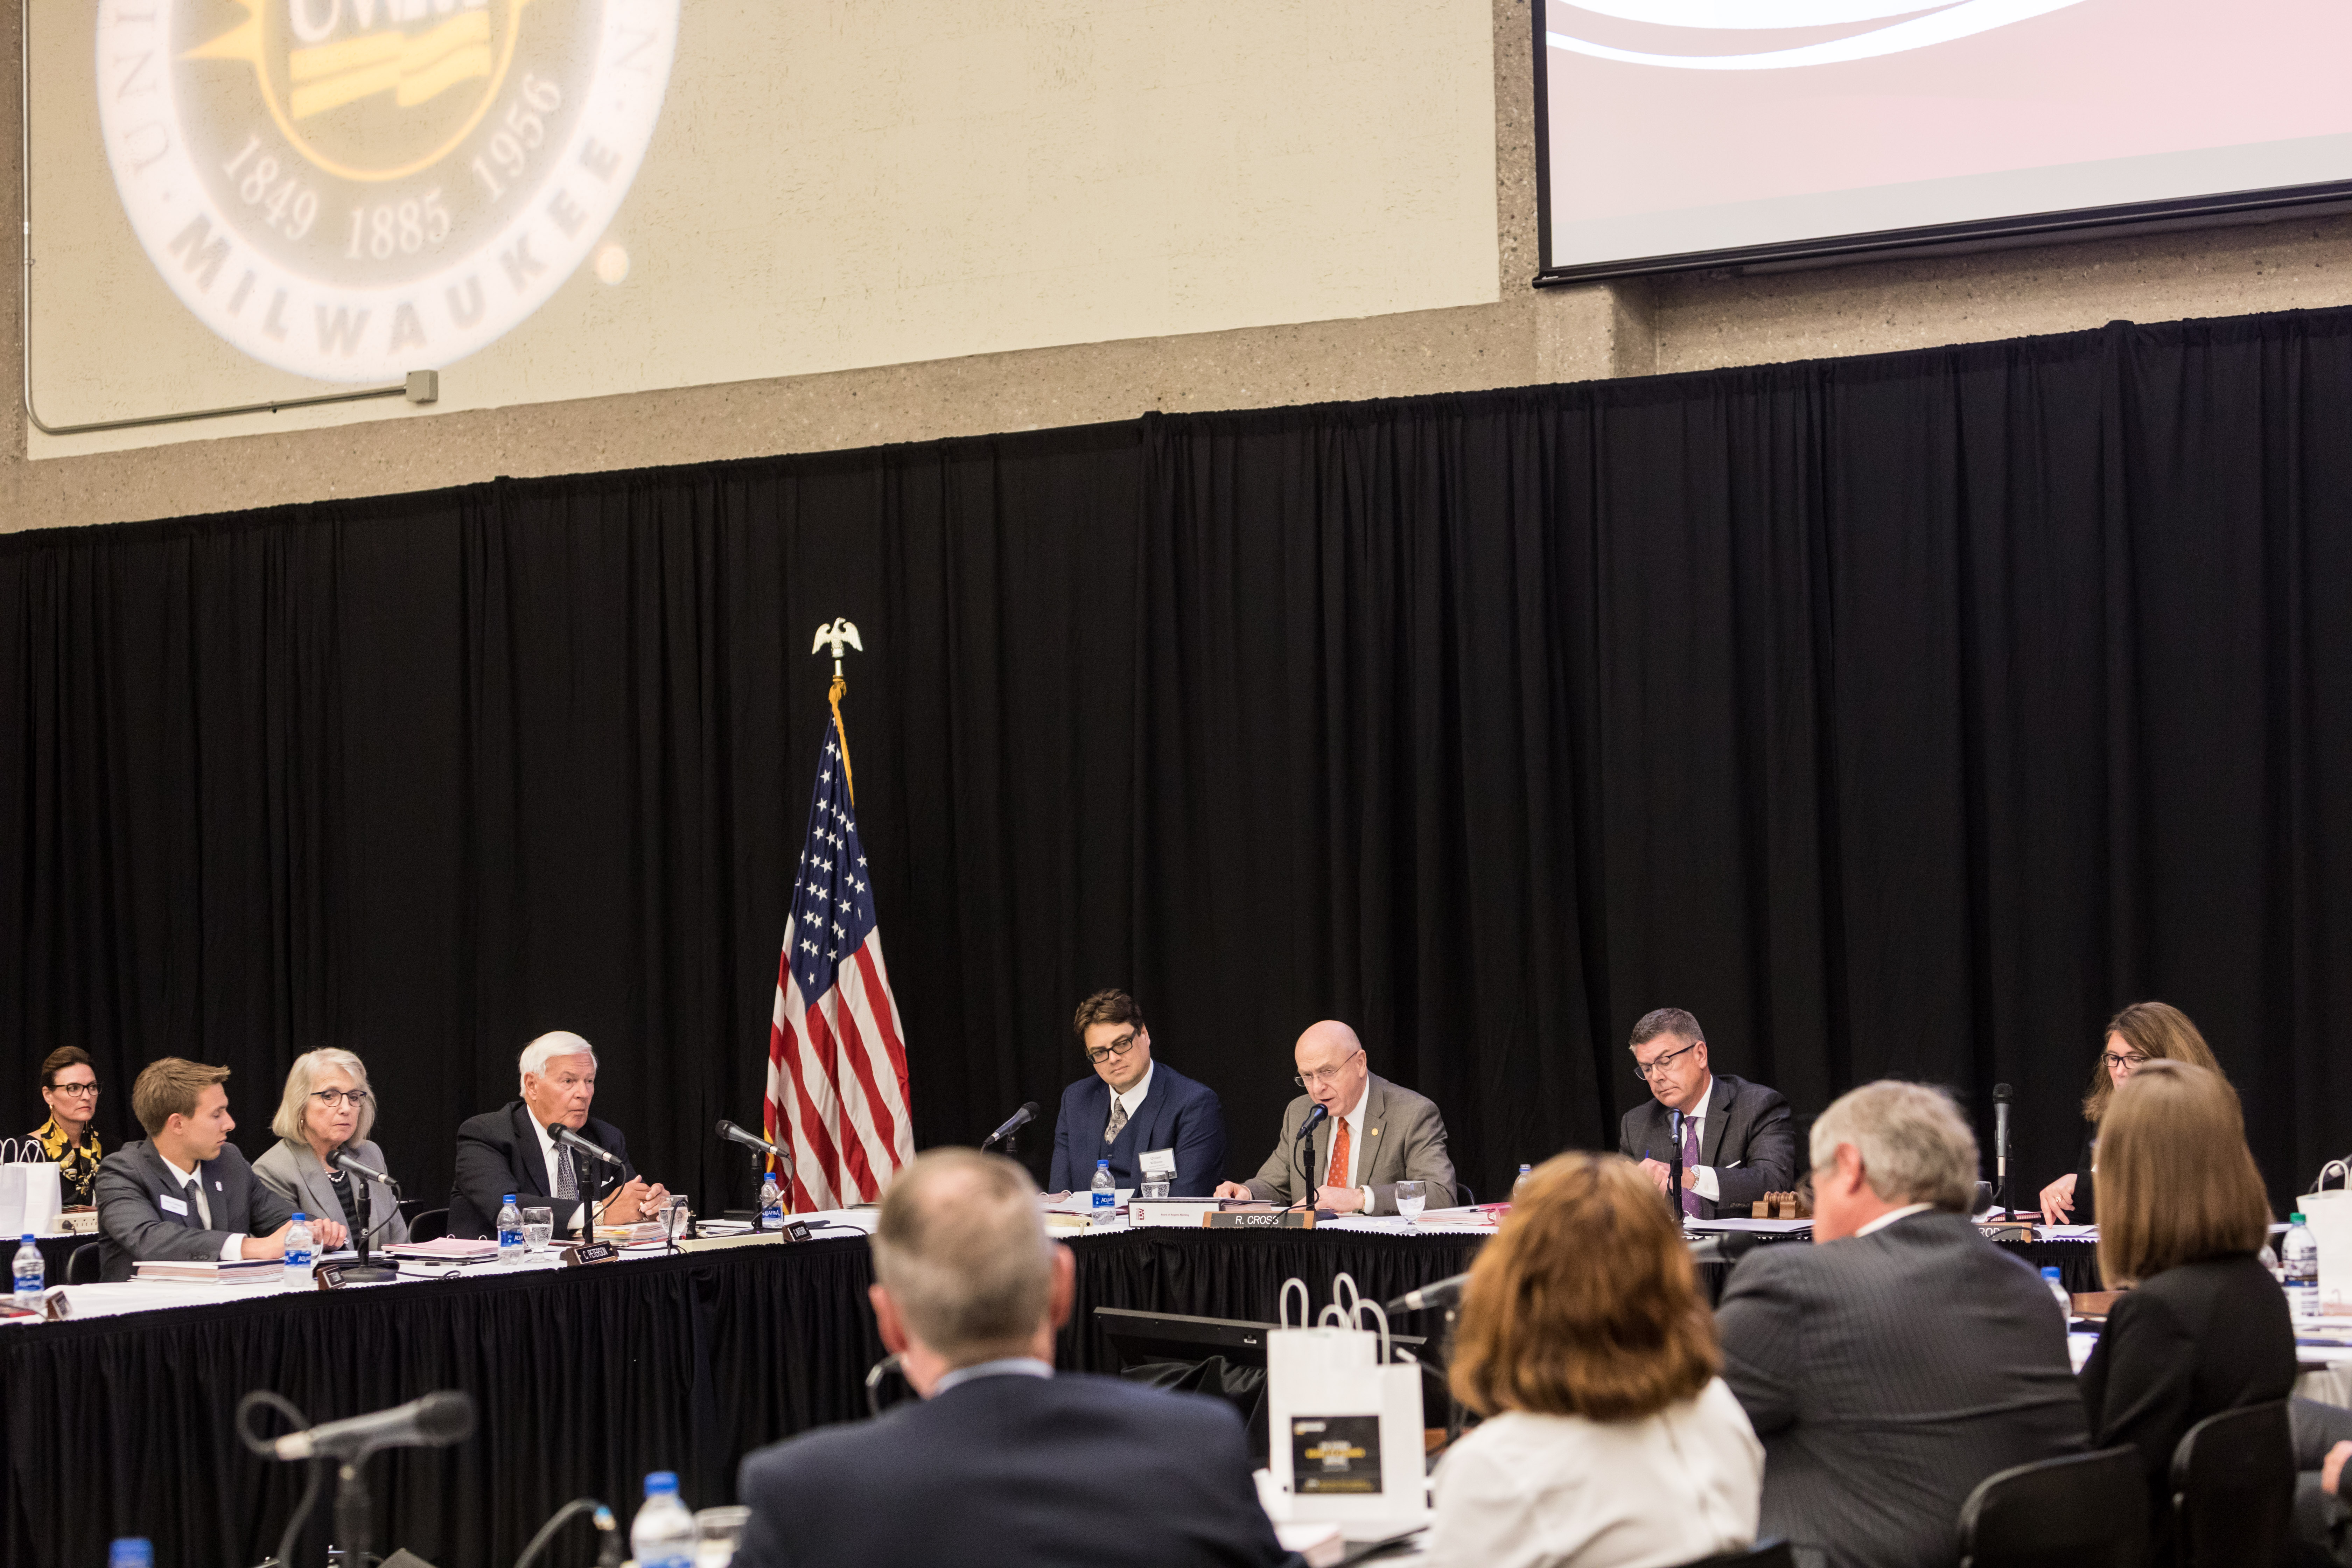 Photo of President Ray Cross speaking at the Board of Regents meeting hosted by UW-Milwaukee on June 6, 2019. (Photo by Mikaila Dusenberry/UW-Milwaukee)